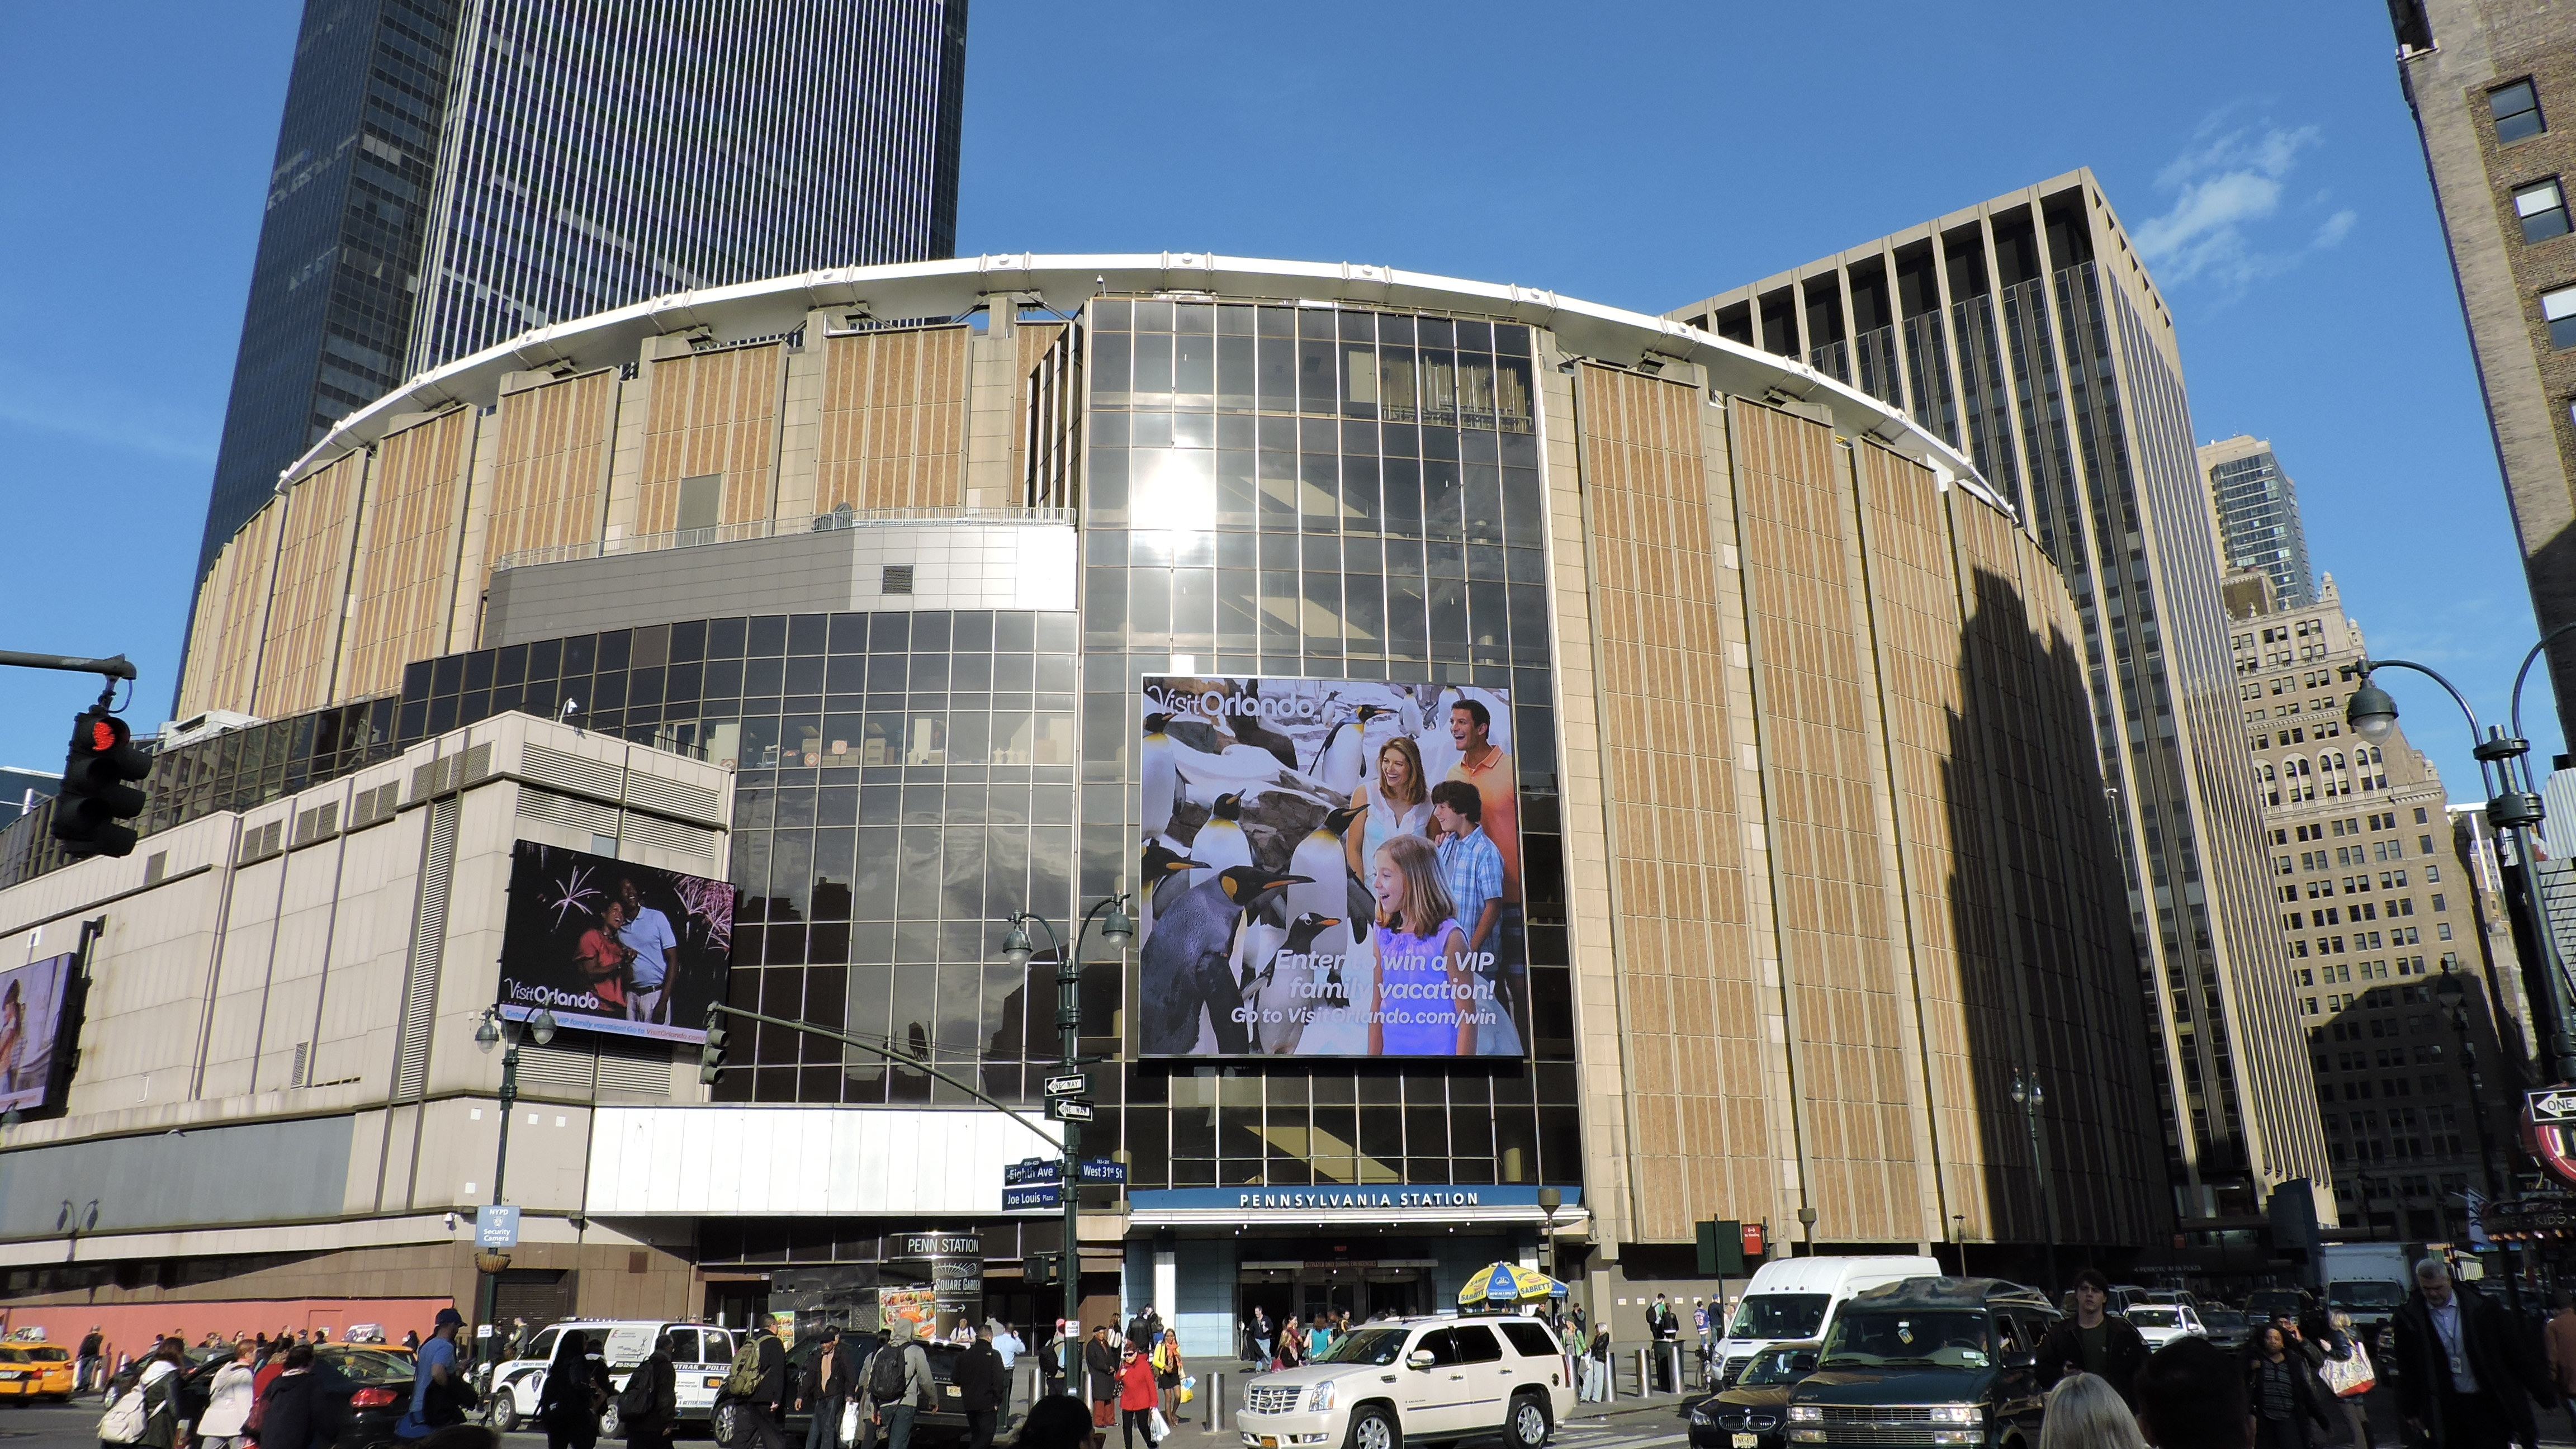 88 Madison Square Garden Stadium And Arena Visits